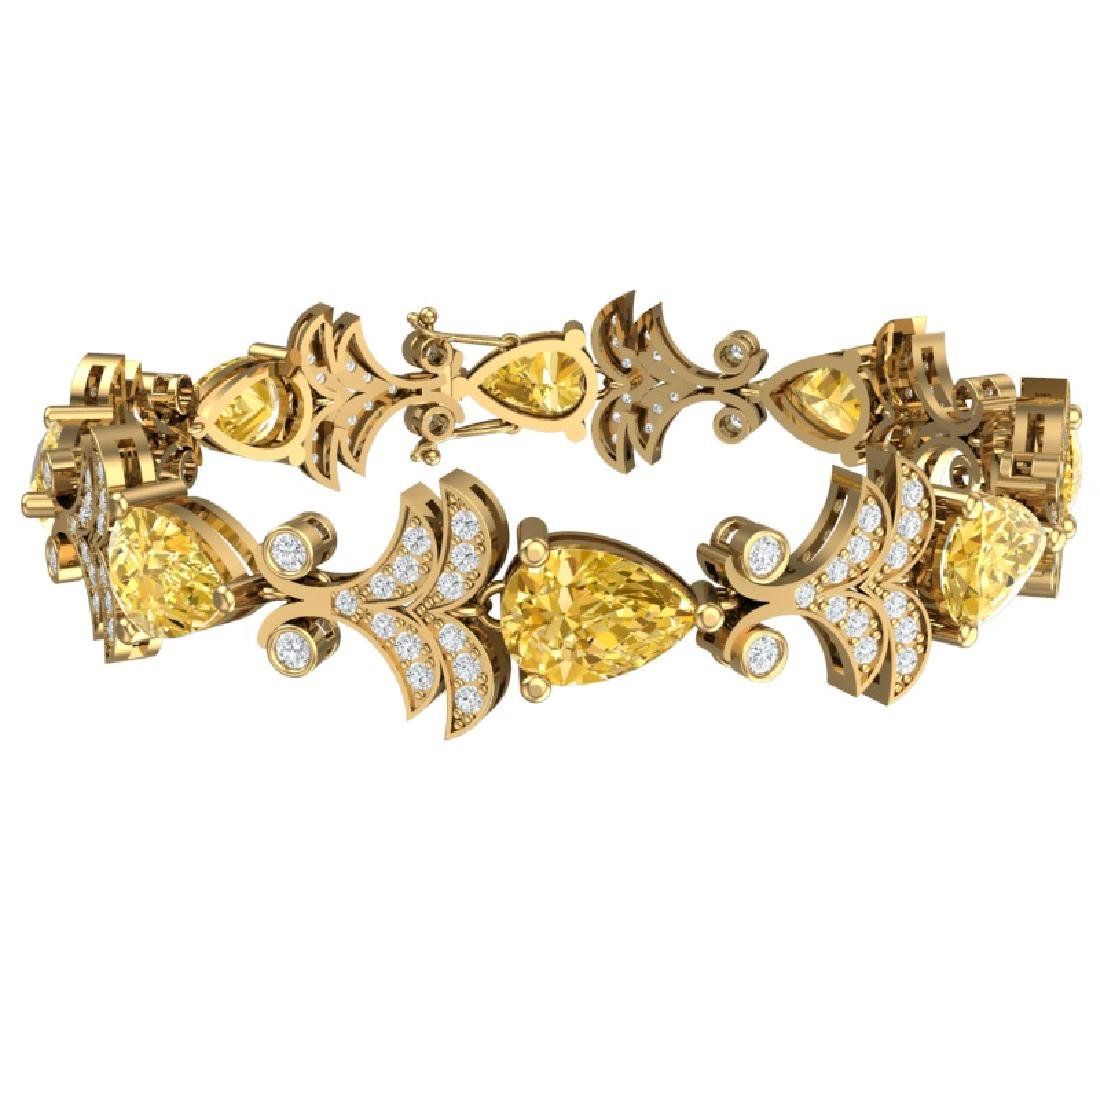 23.66 CTW Royalty Canary Citrine & VS Diamond Bracelet - 3